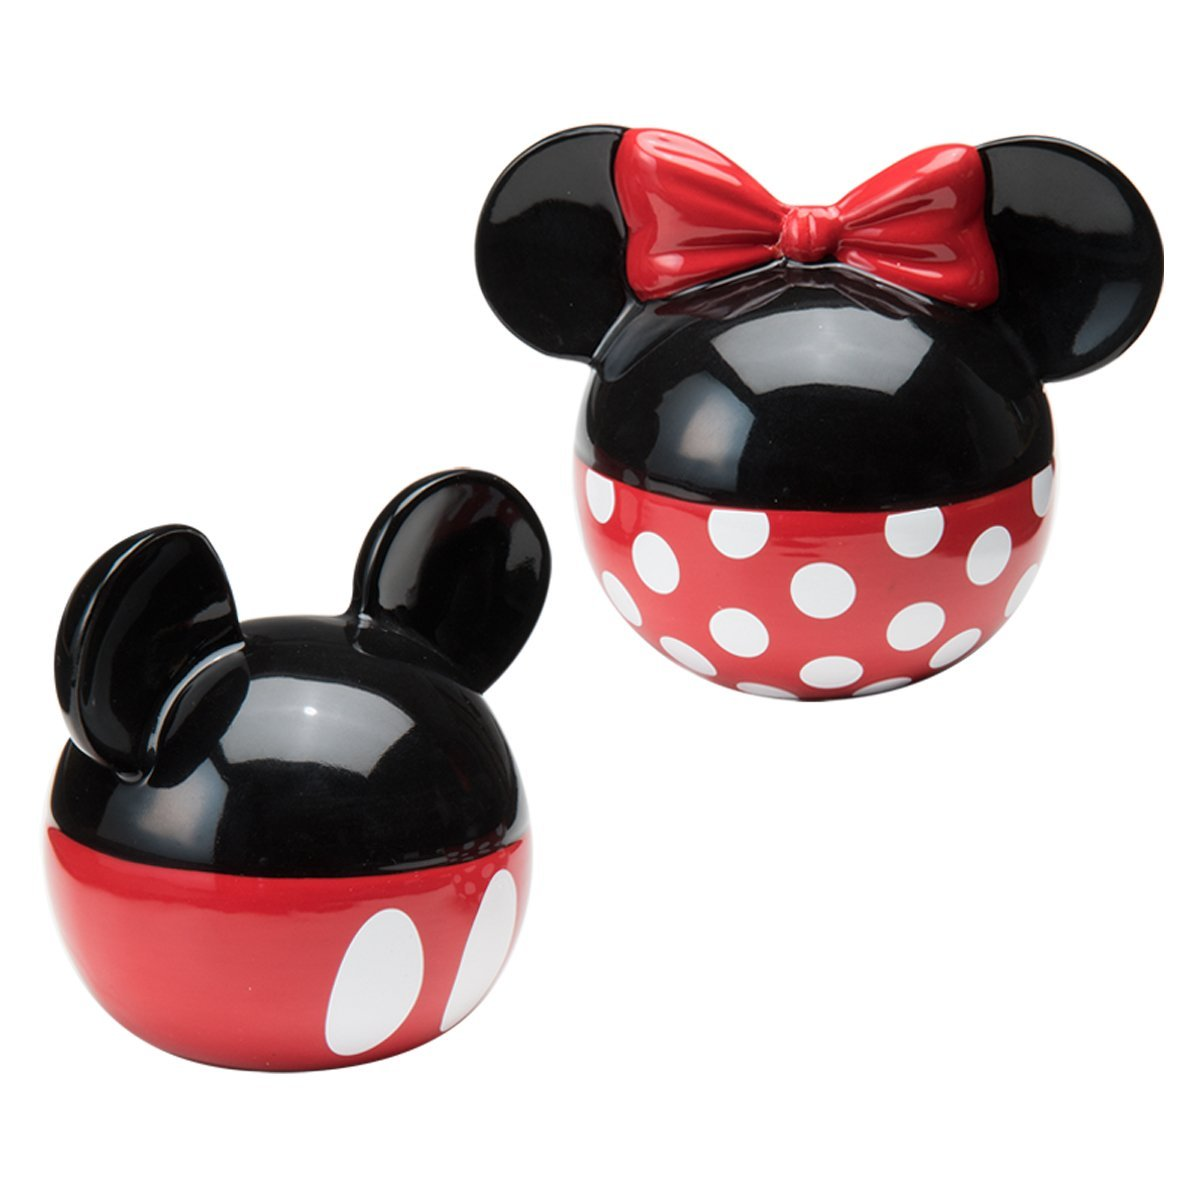 Disney Accessories For The Kitchen